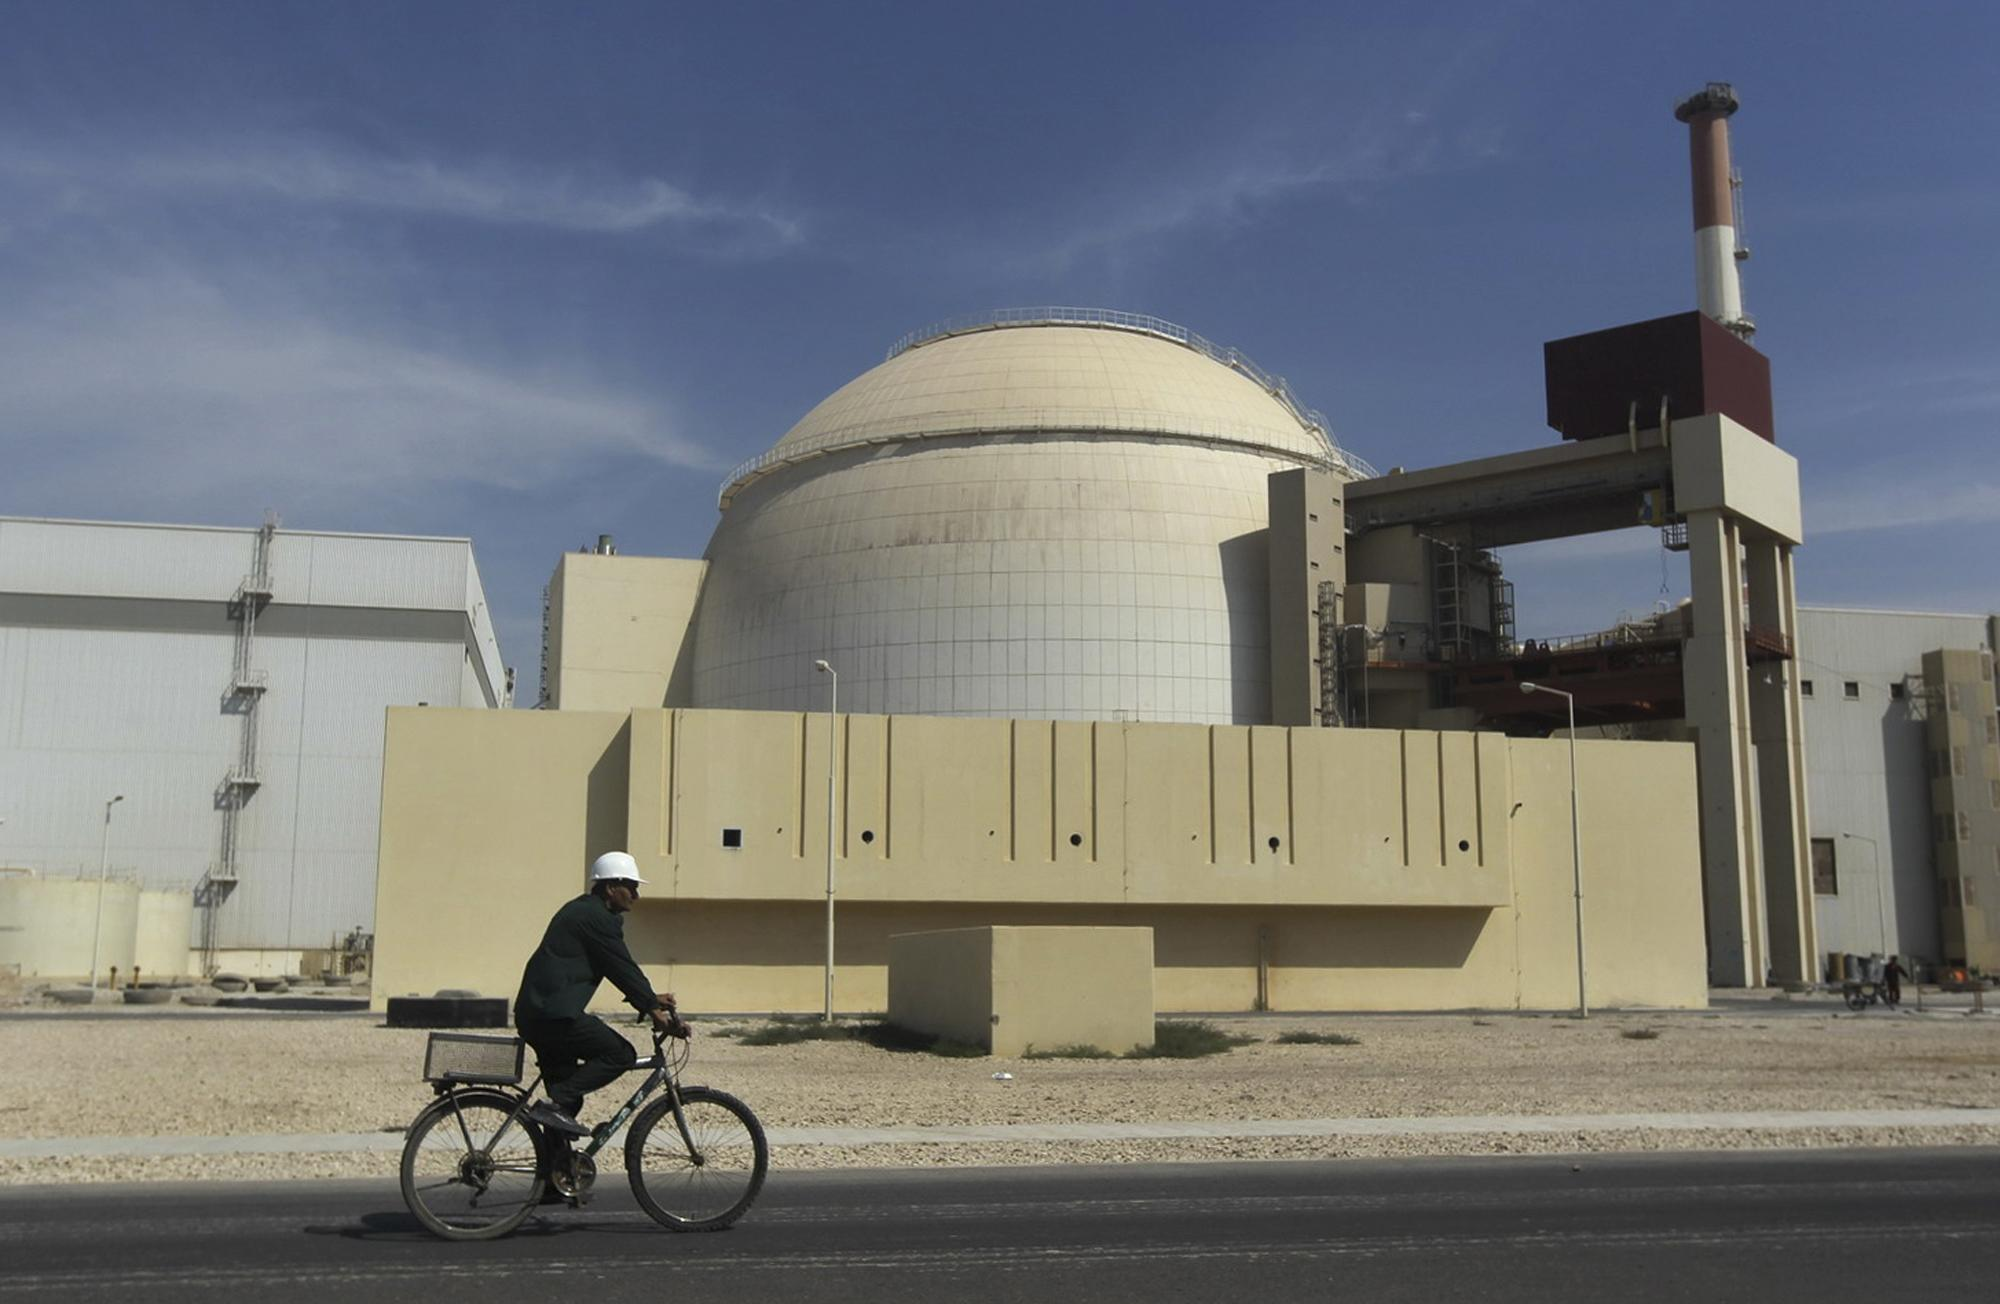 FILE - In this Oct. 26, 2010, file photo, a worker rides a bike in front of the reactor building of the Bushehr nuclear power plant, just outside the southern city of Bushehr, Iran. Several countries monitoring Iran's nuclear program have picked up information that the country's only power-producing nuclear reactor was damaged by one or more of several recent earthquakes, with long cracks appearing in at least one section of the structure, two diplomats said Tuesday June 4, 2013. (AP Photo/Mehr News Agency, Majid Asgaripour, File)